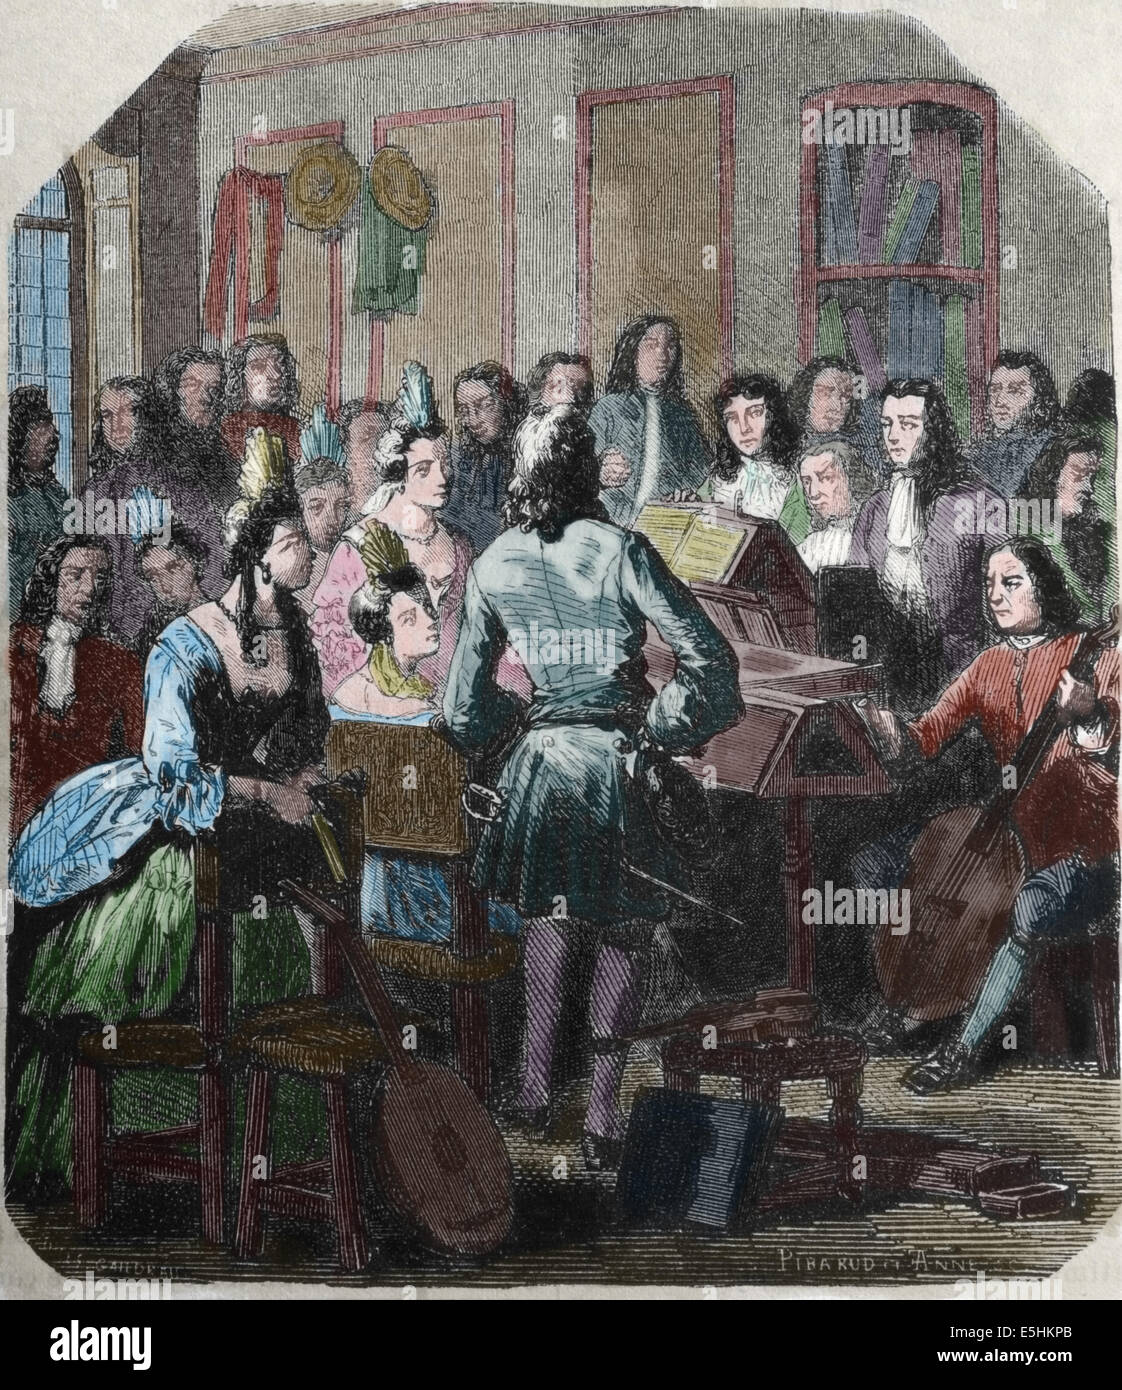 Thomas Briton (1657 1714) English charcoal merchant and concert promoter. engraving by Ribaraud. ,1879. Later colouration. Stock Photo